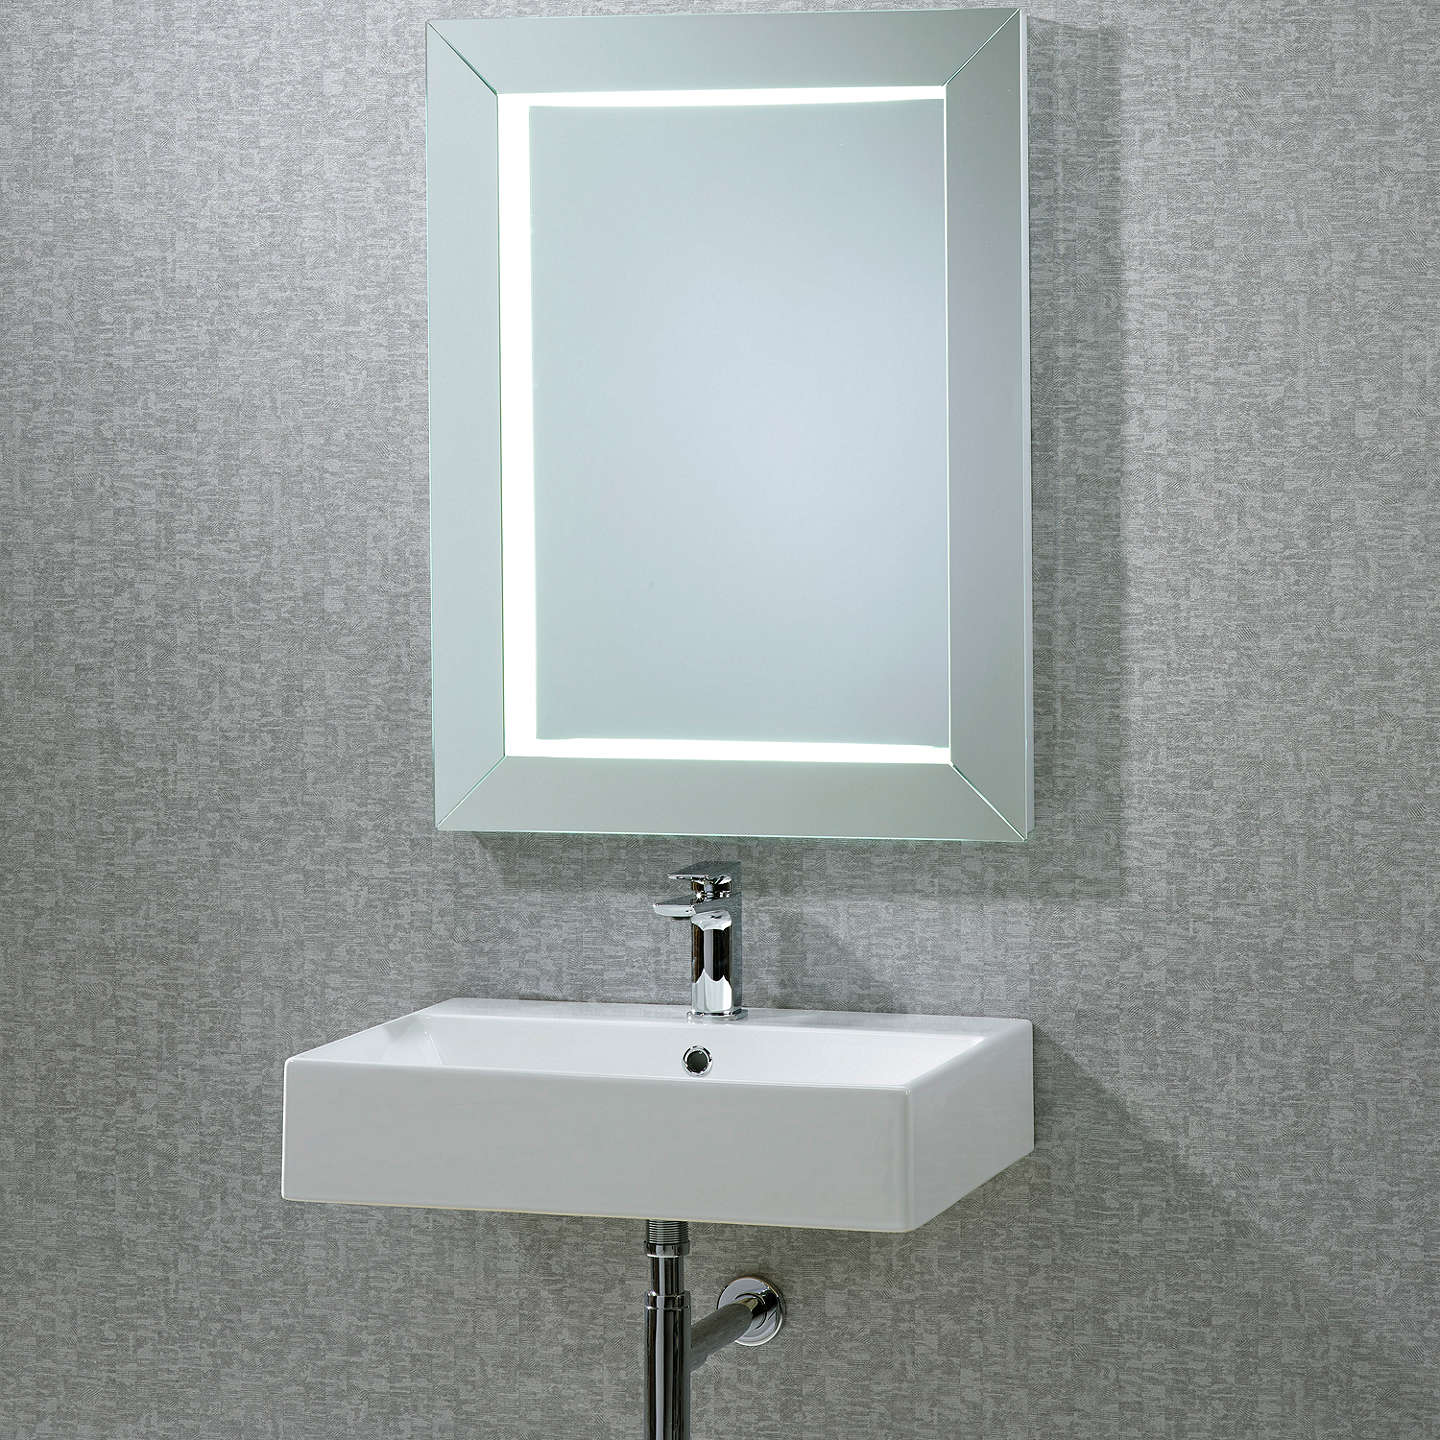 roper rhodes sense frame illuminated bathroom mirror at. Black Bedroom Furniture Sets. Home Design Ideas